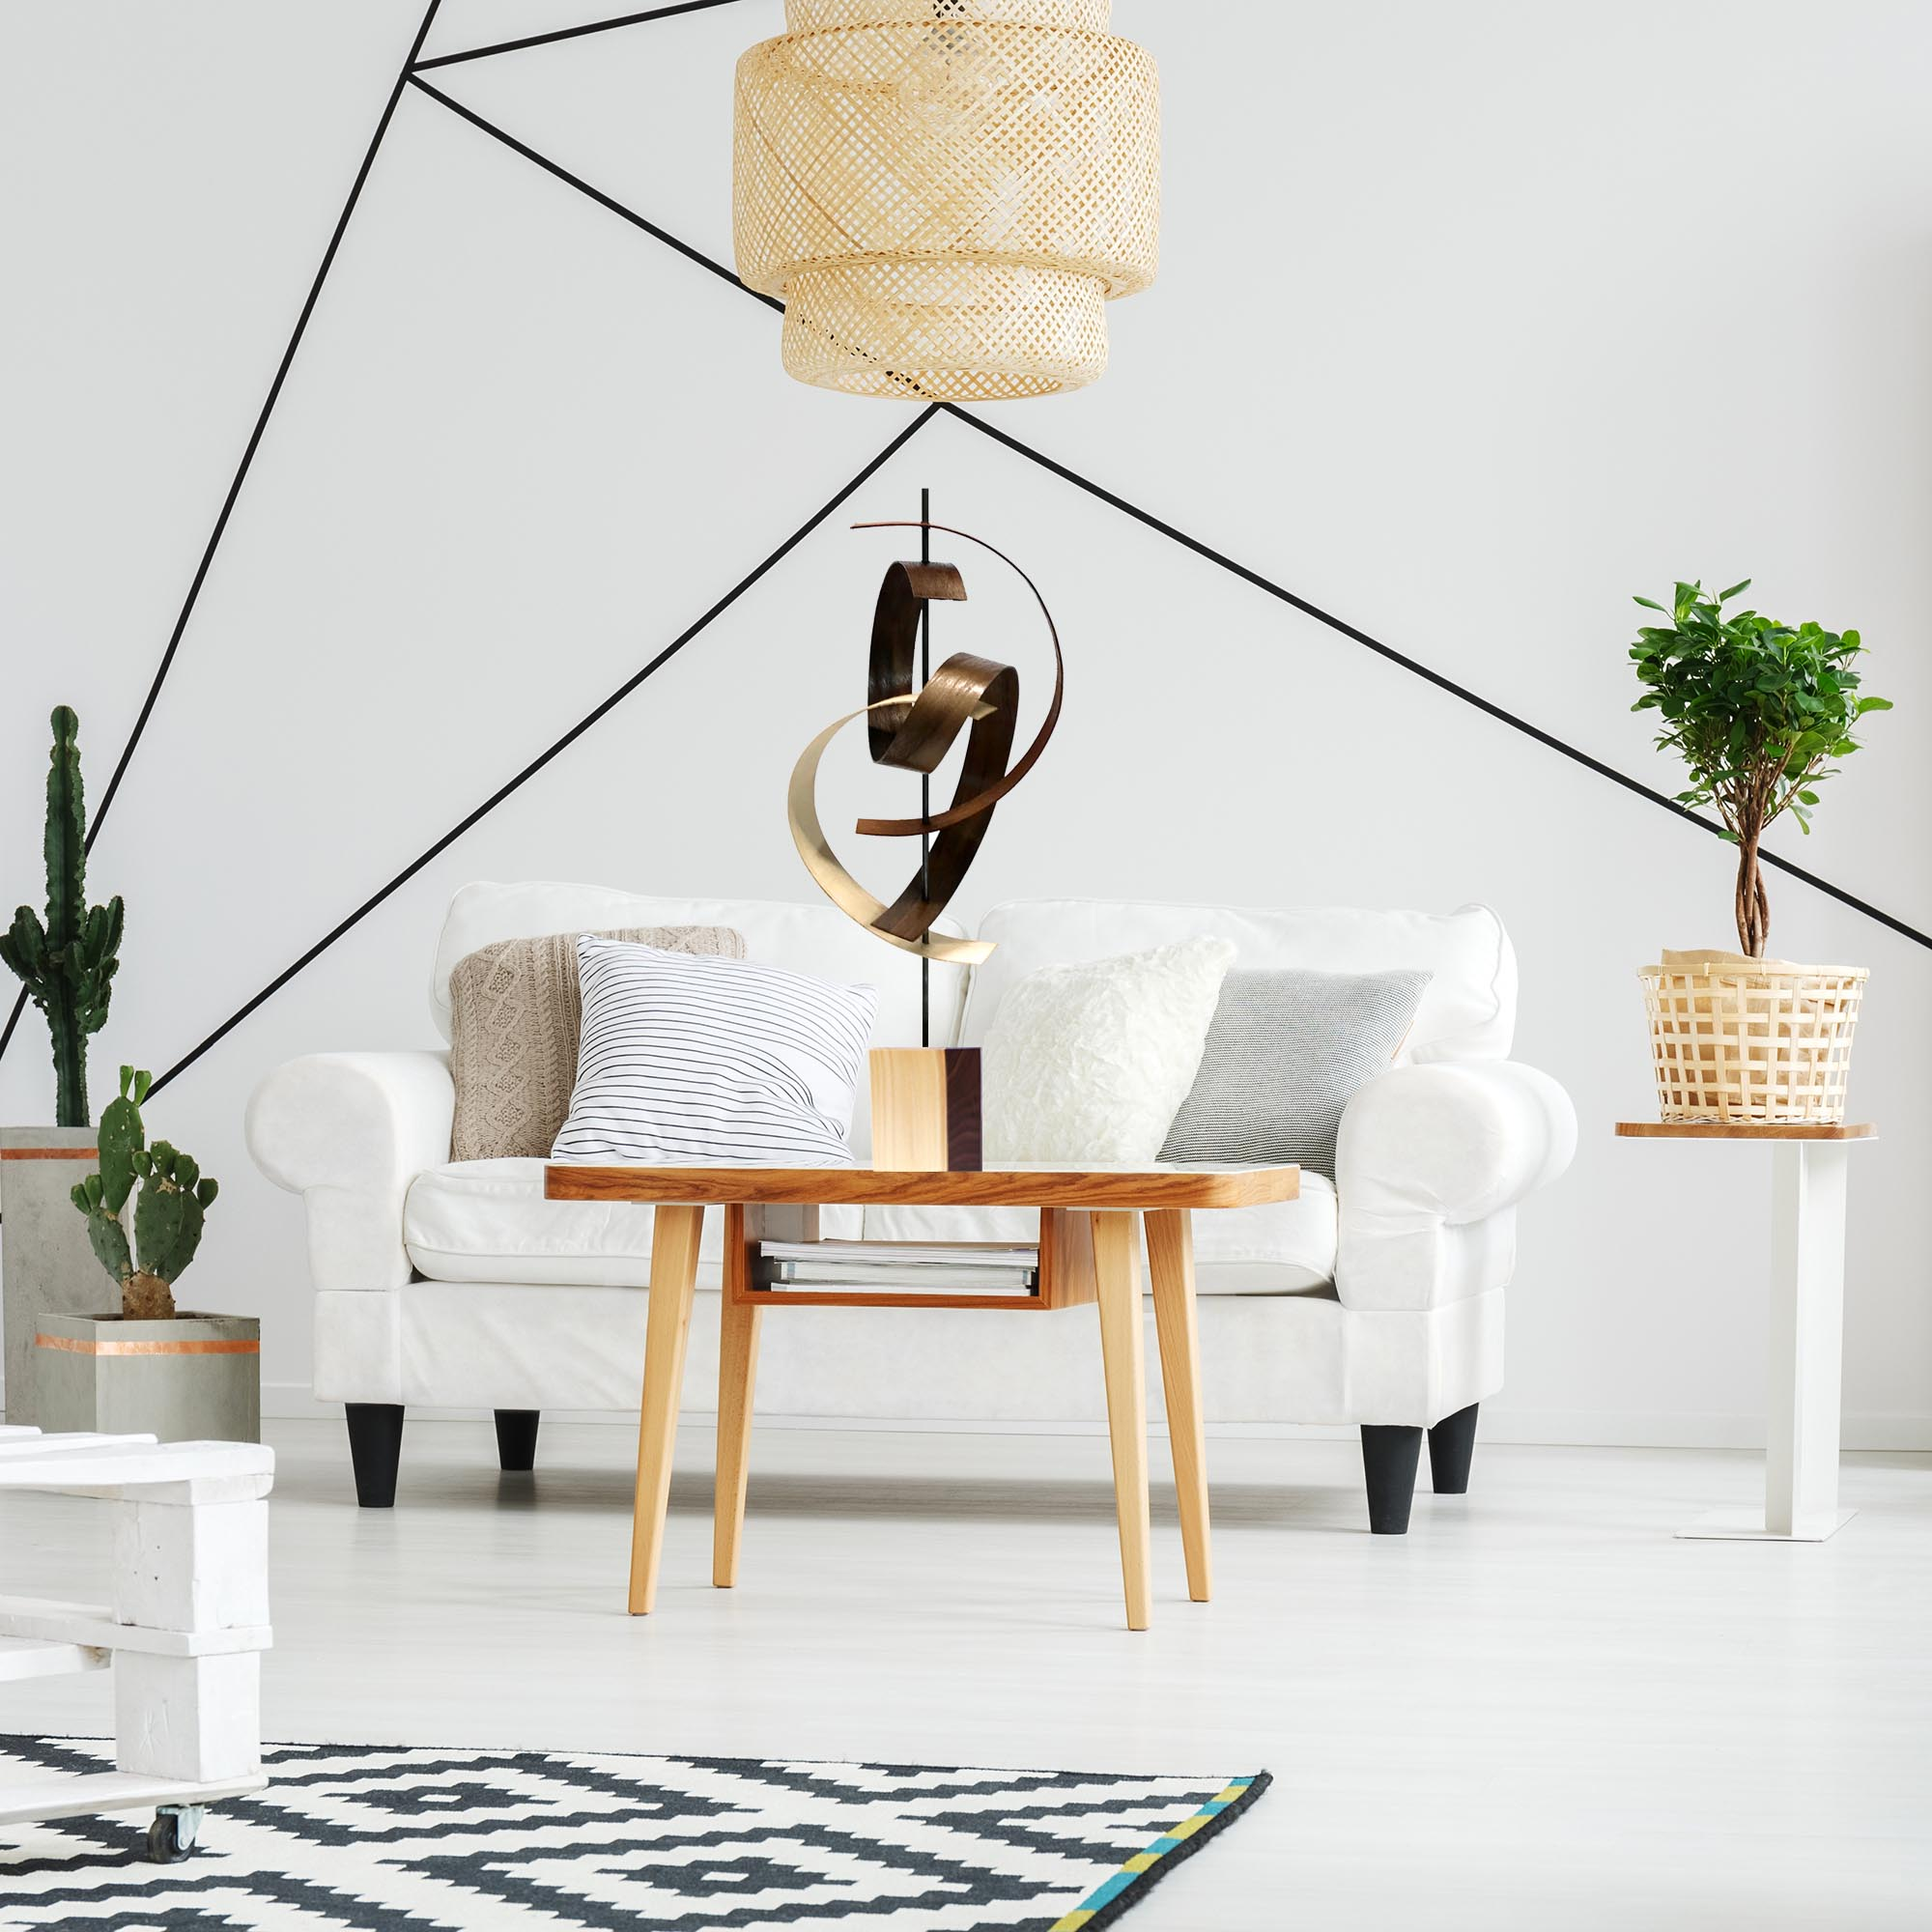 Swing by Jackson Wright - Modern Wood Sculpture, Mid-Century Home Decor - Lifestyle View